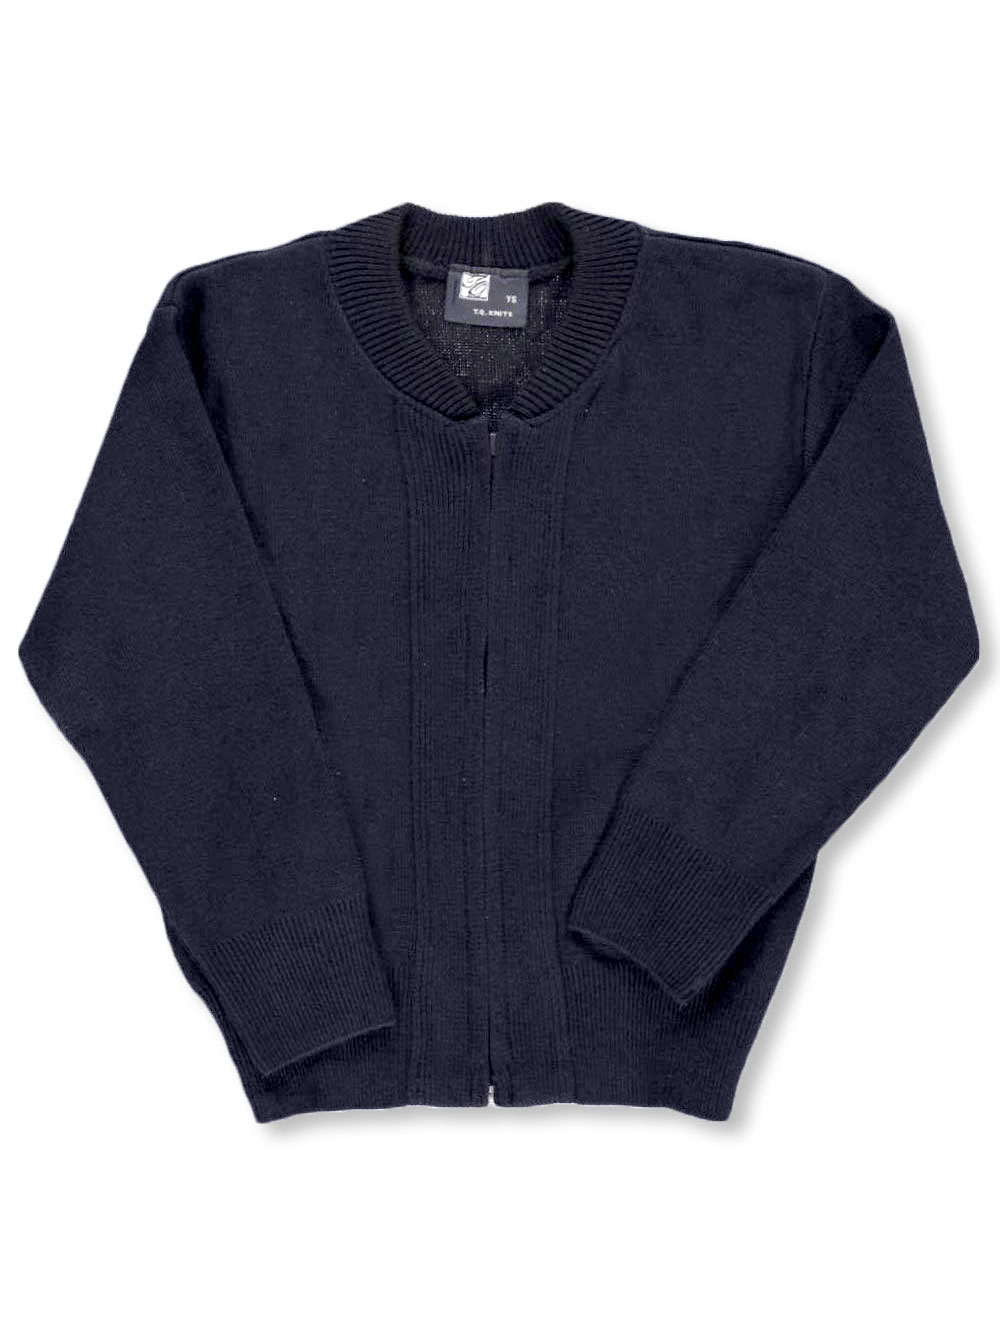 Boys Navy Sweaters